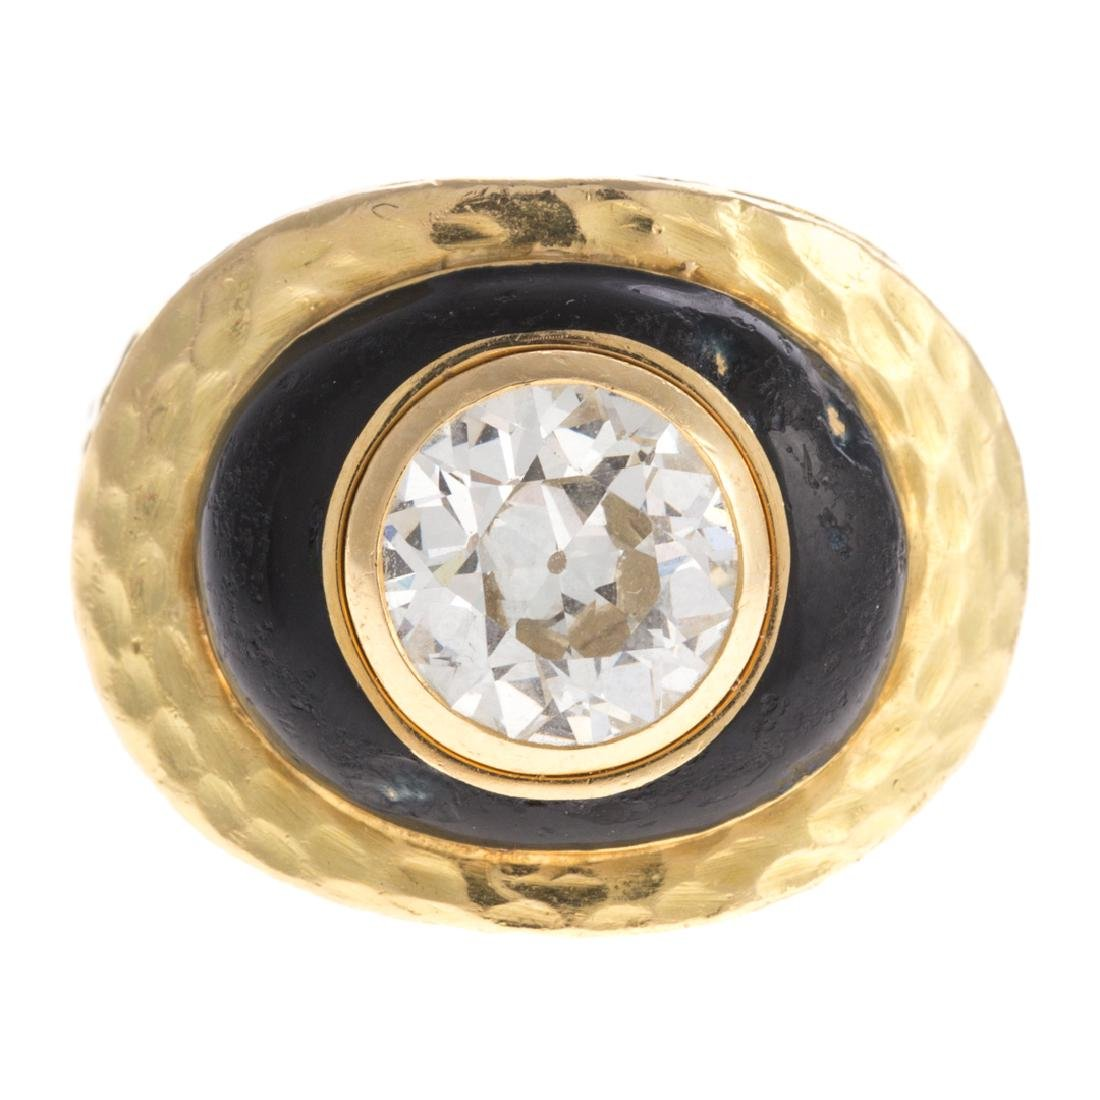 A 18K Diamond Ring & Enamel by David Webb